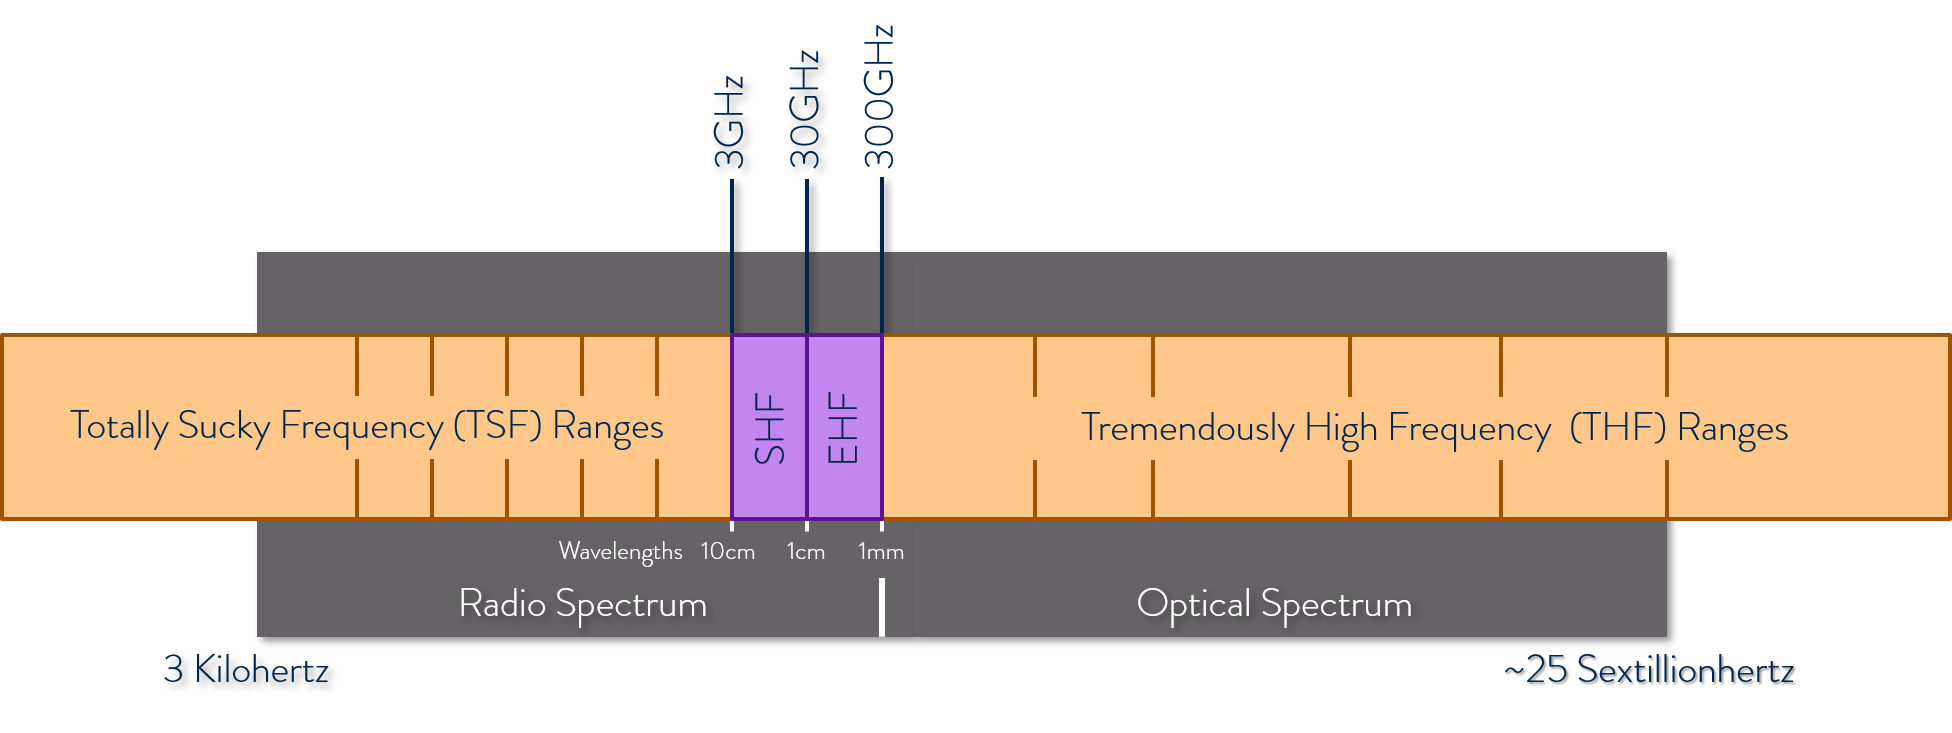 shf-ehf-frequency-bands-and-wavelengths